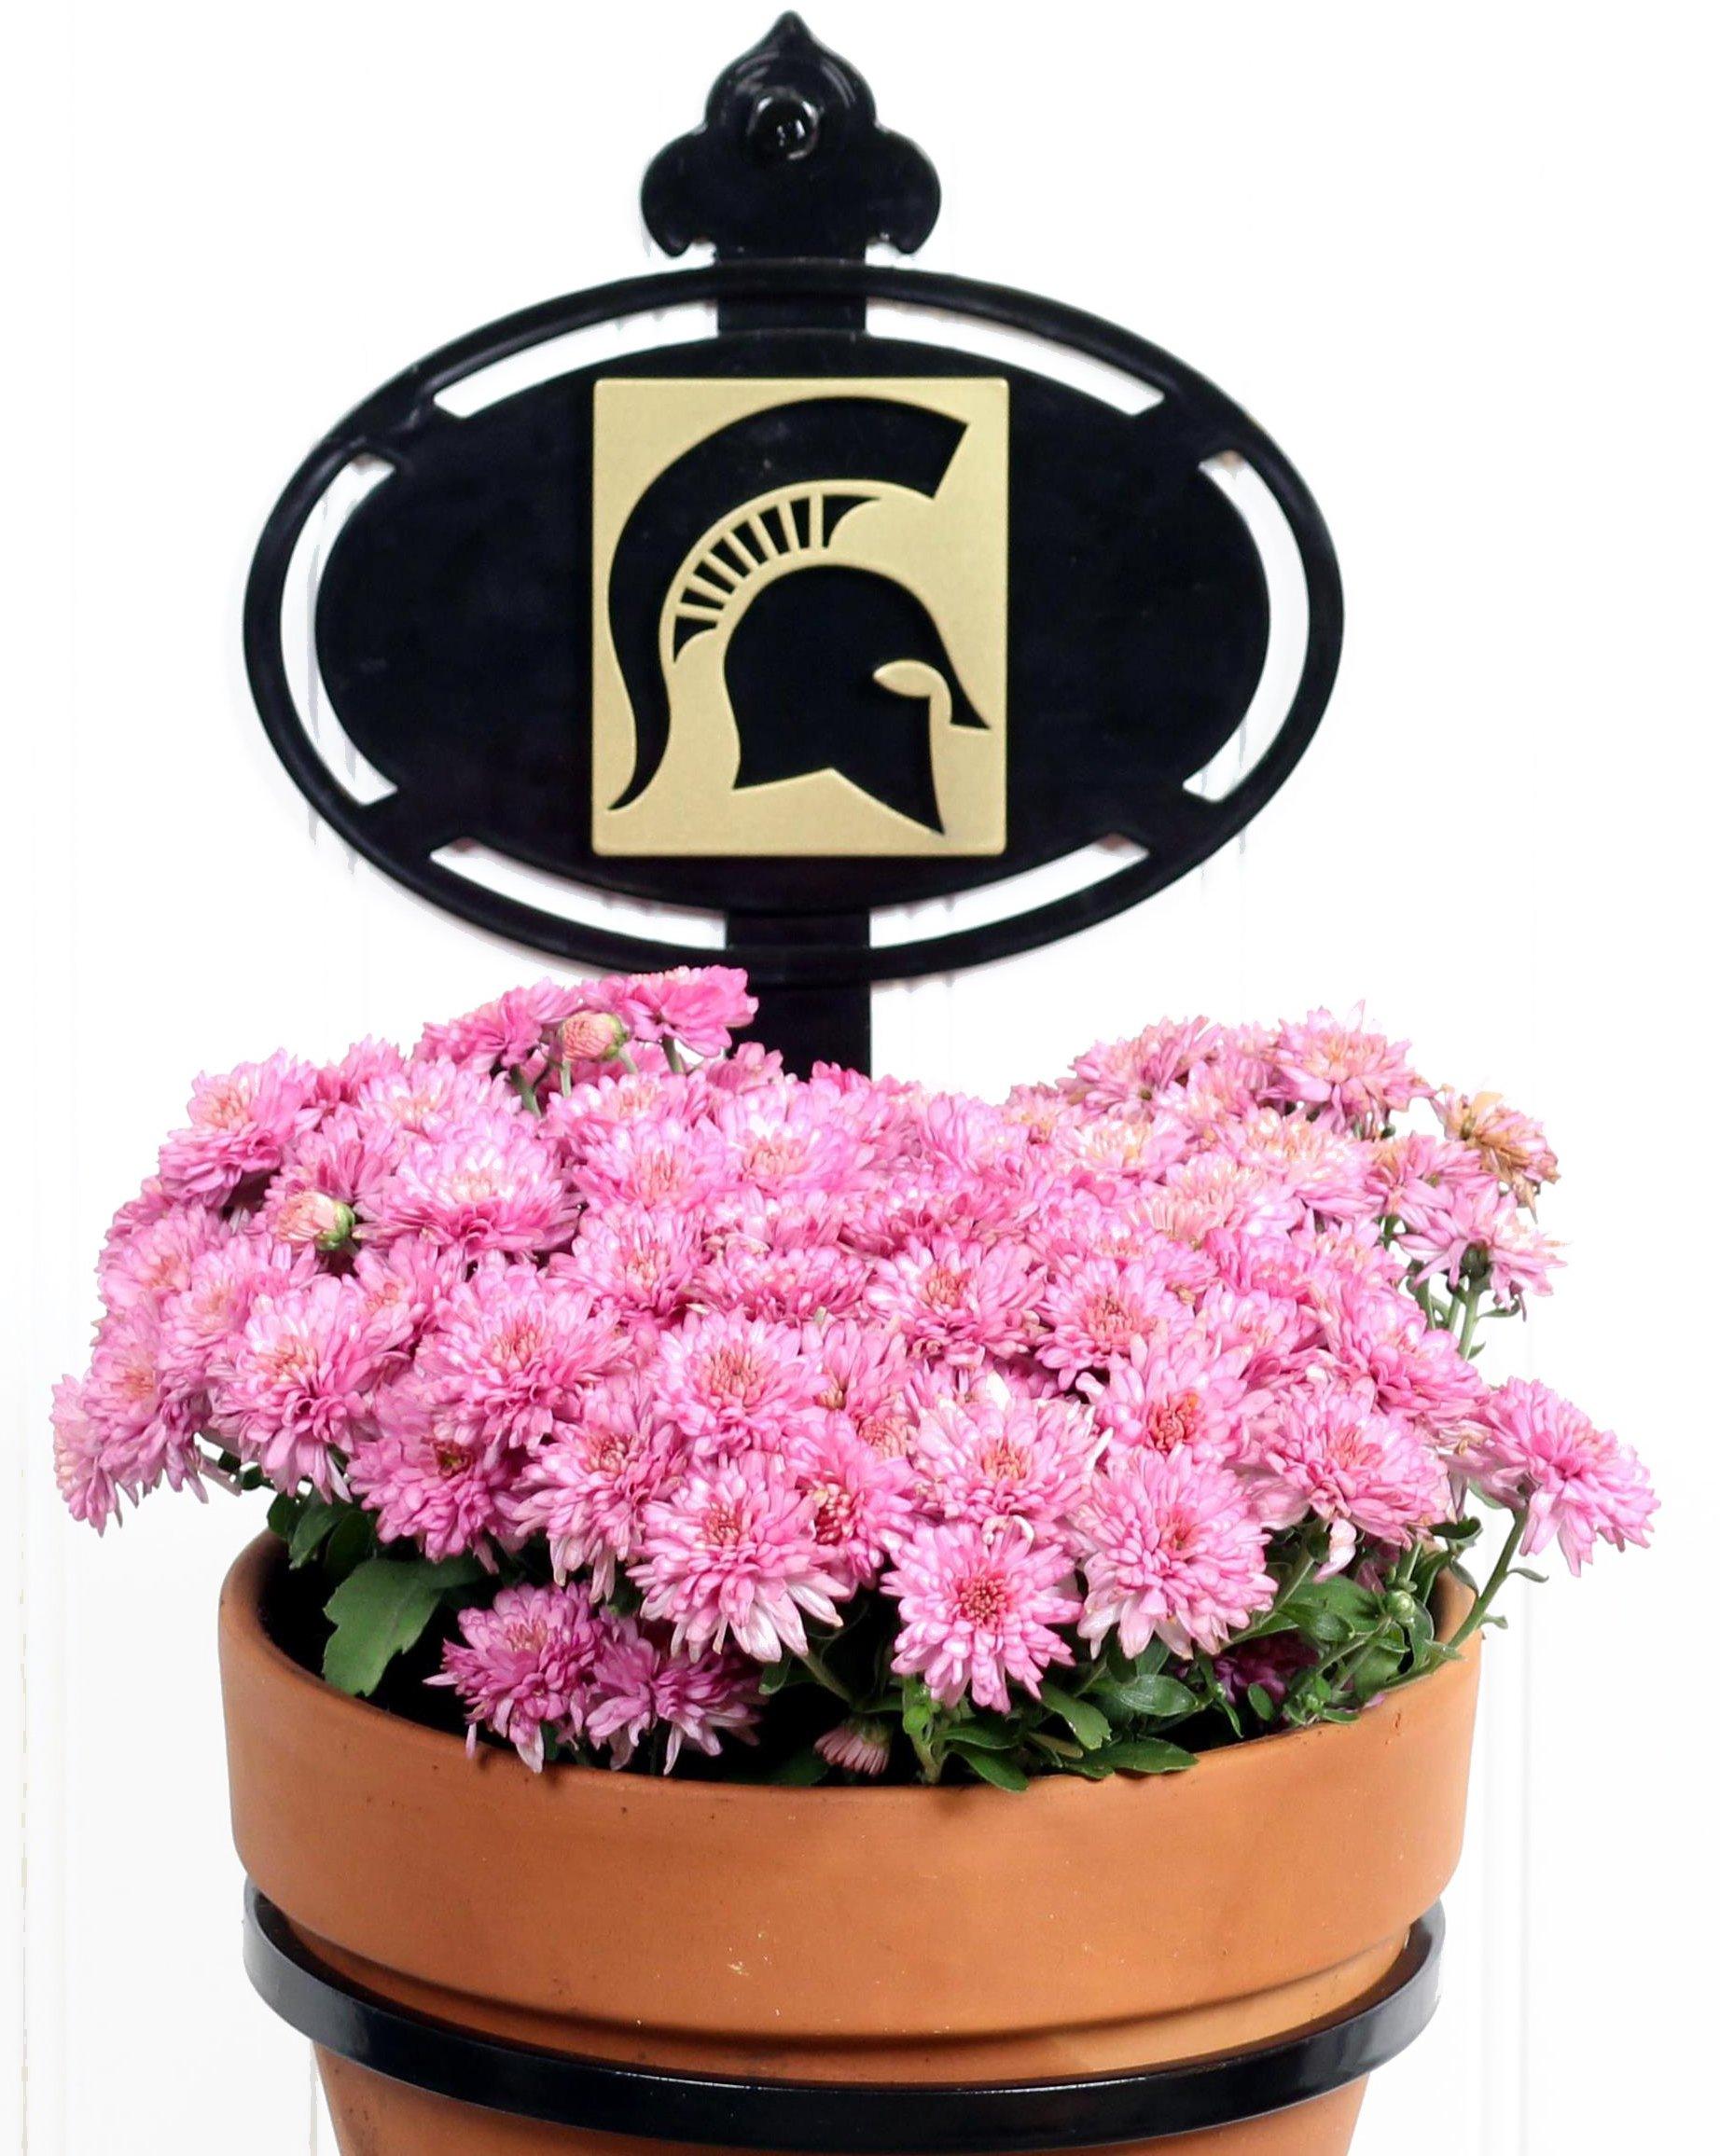 Henson Metal Works Michigan State University Collegiate Logo Wall Mounted Flower Pot Holder by Henson Metal Works